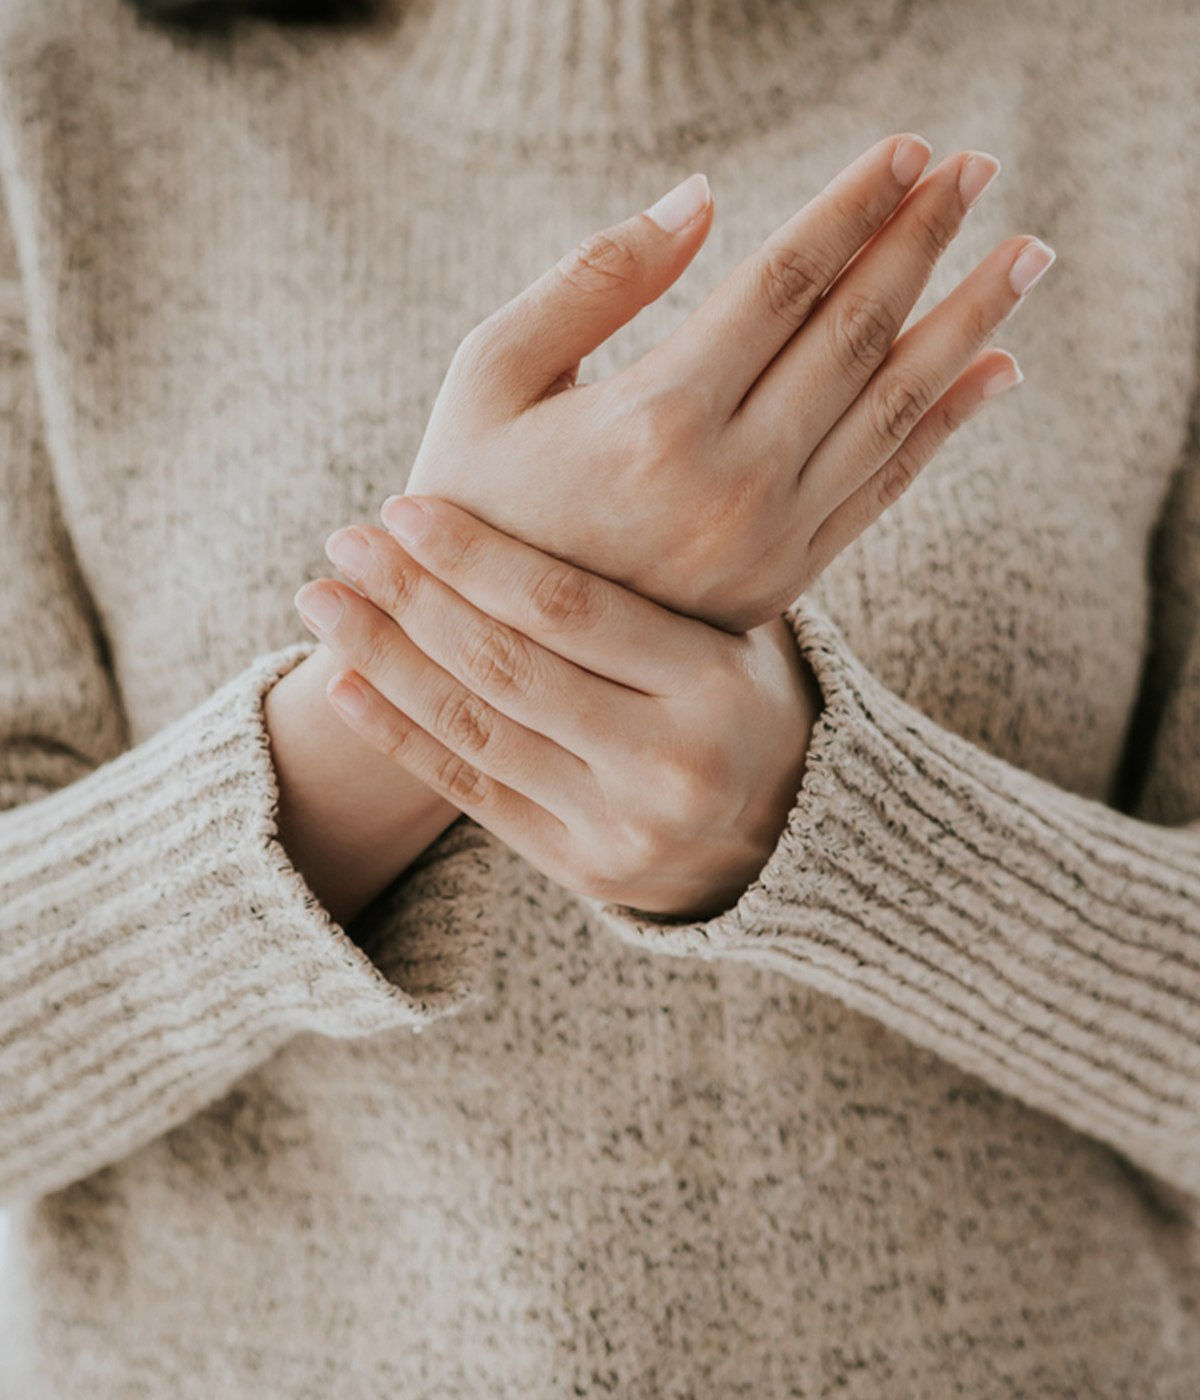 Dupuytren's Contracture - Contracting Finger Pain